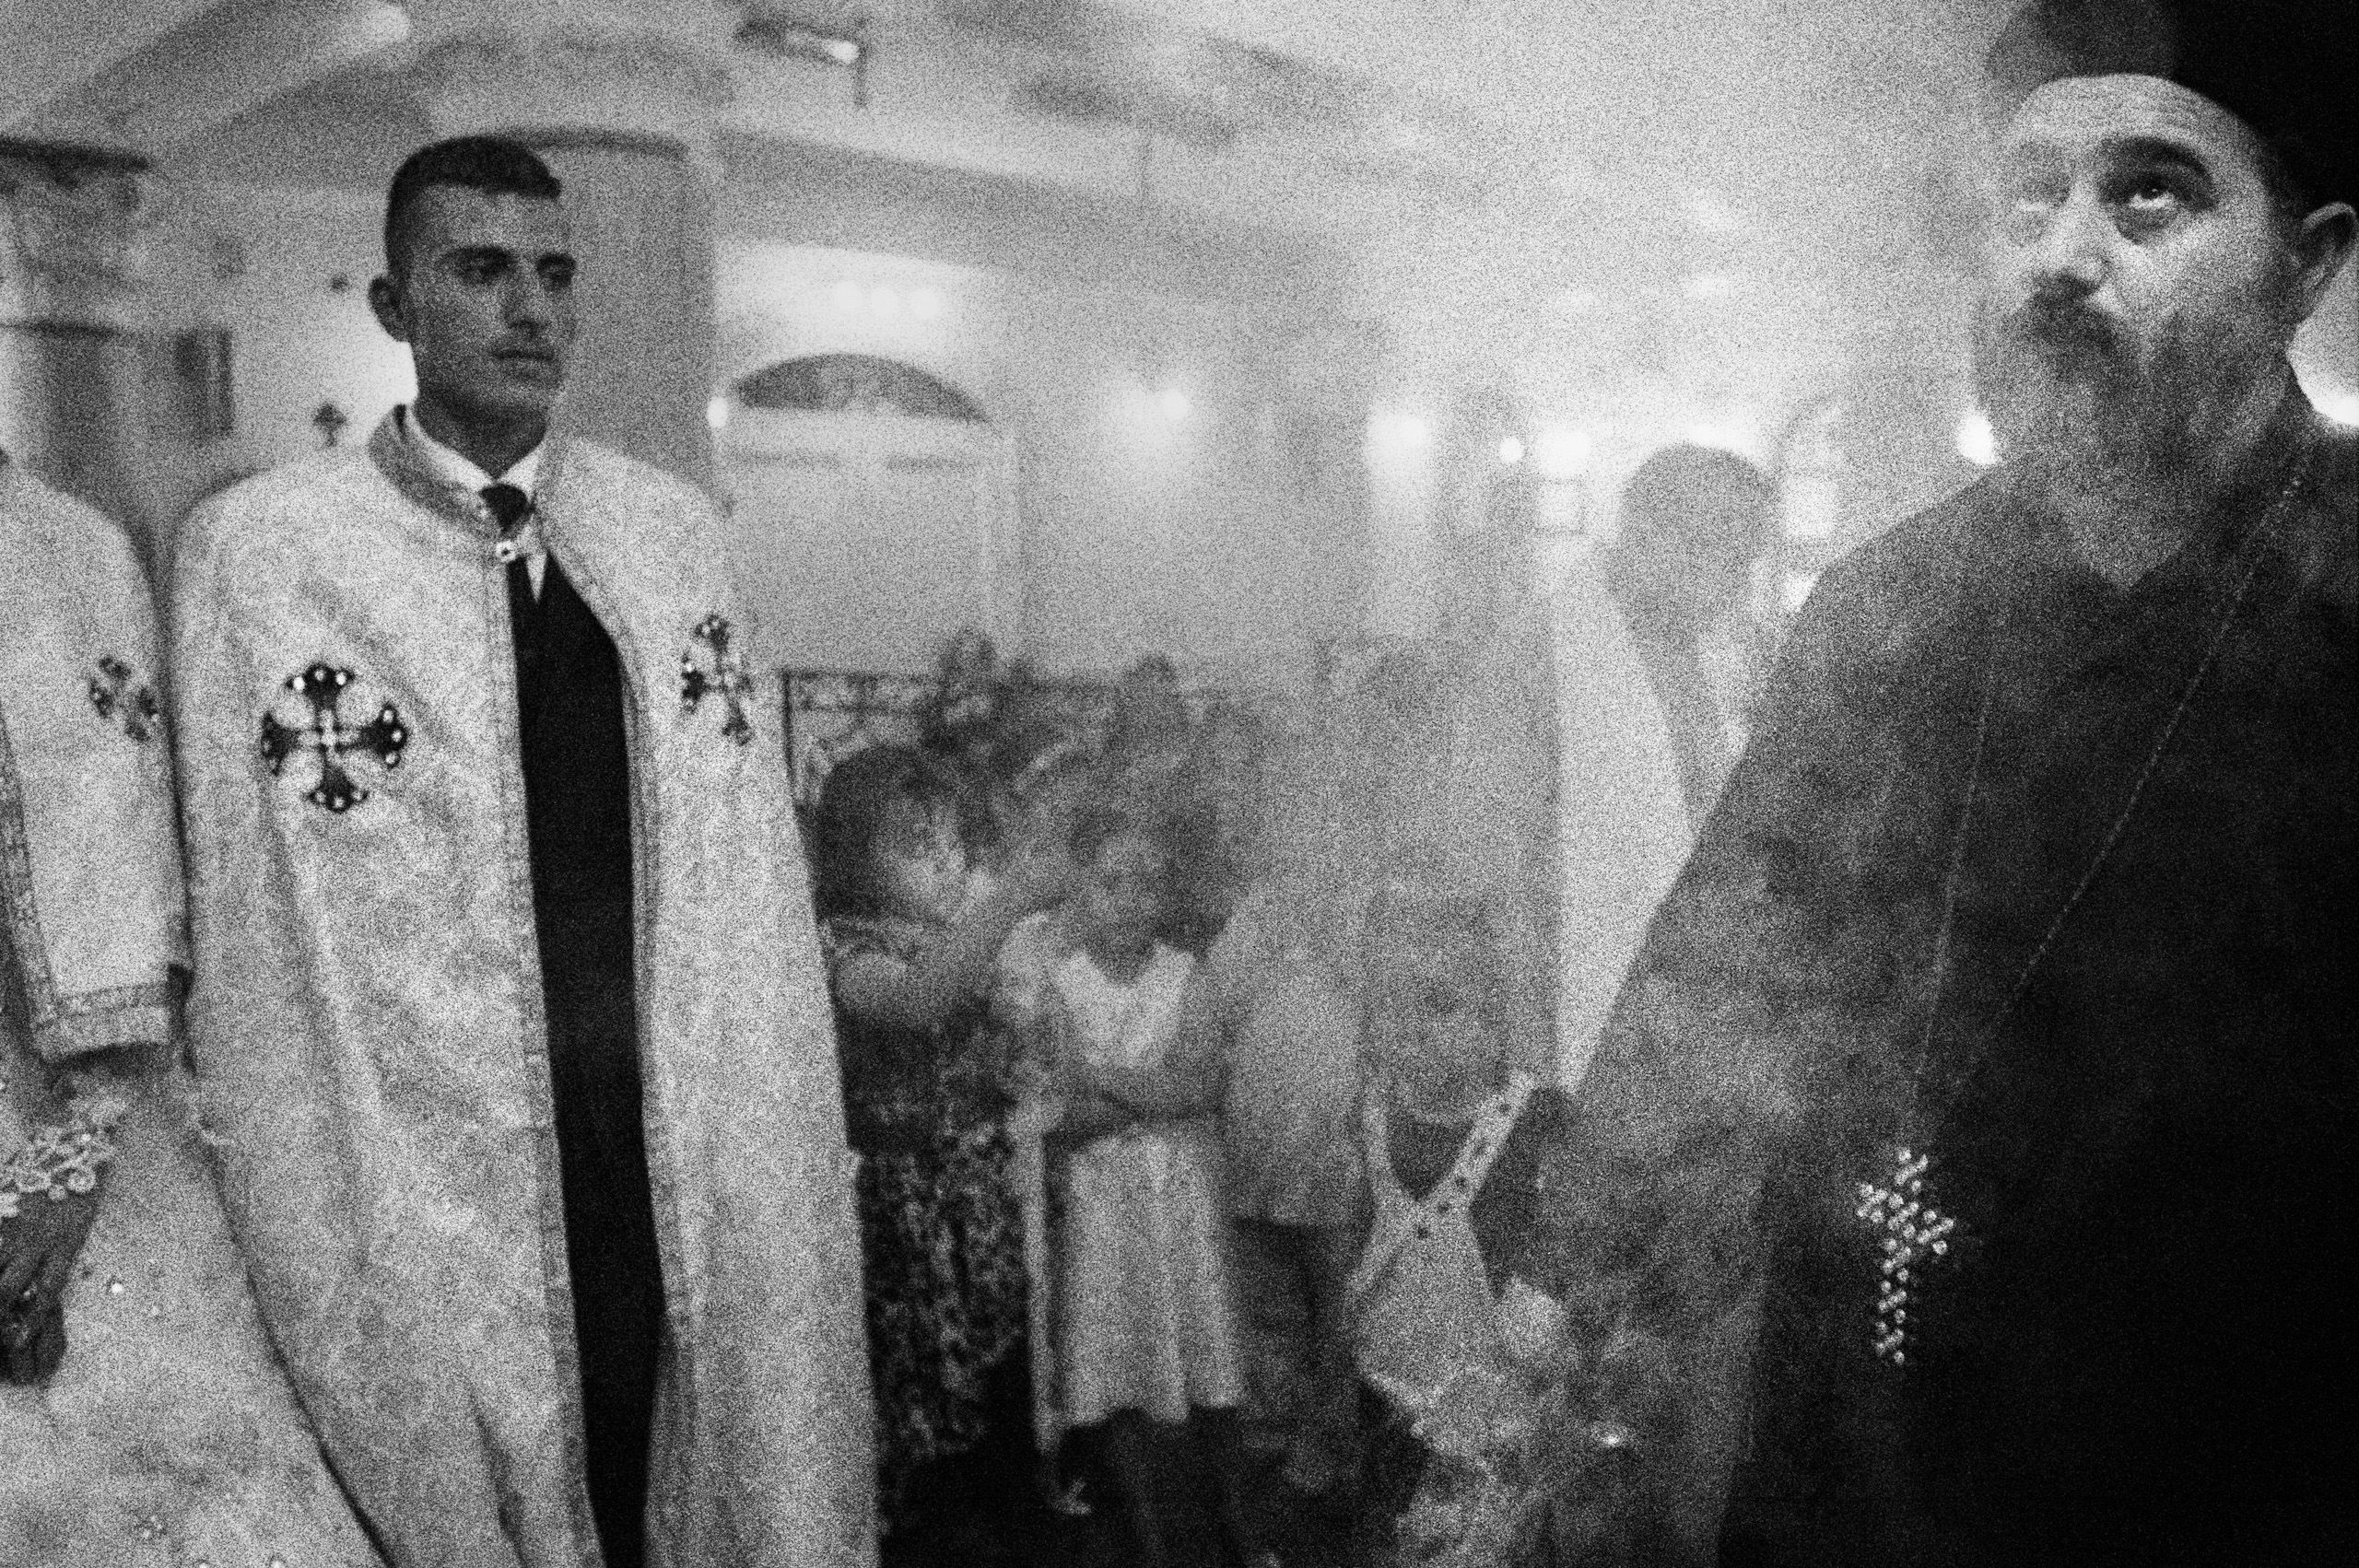 Deir Abu Hennis, Egypt. An Orthodox wedding. The Catholic community of the village is a minority, but the relationships between the two denominations are good. During festivities, representatives of each denomination pay tribute to others. July 2012.